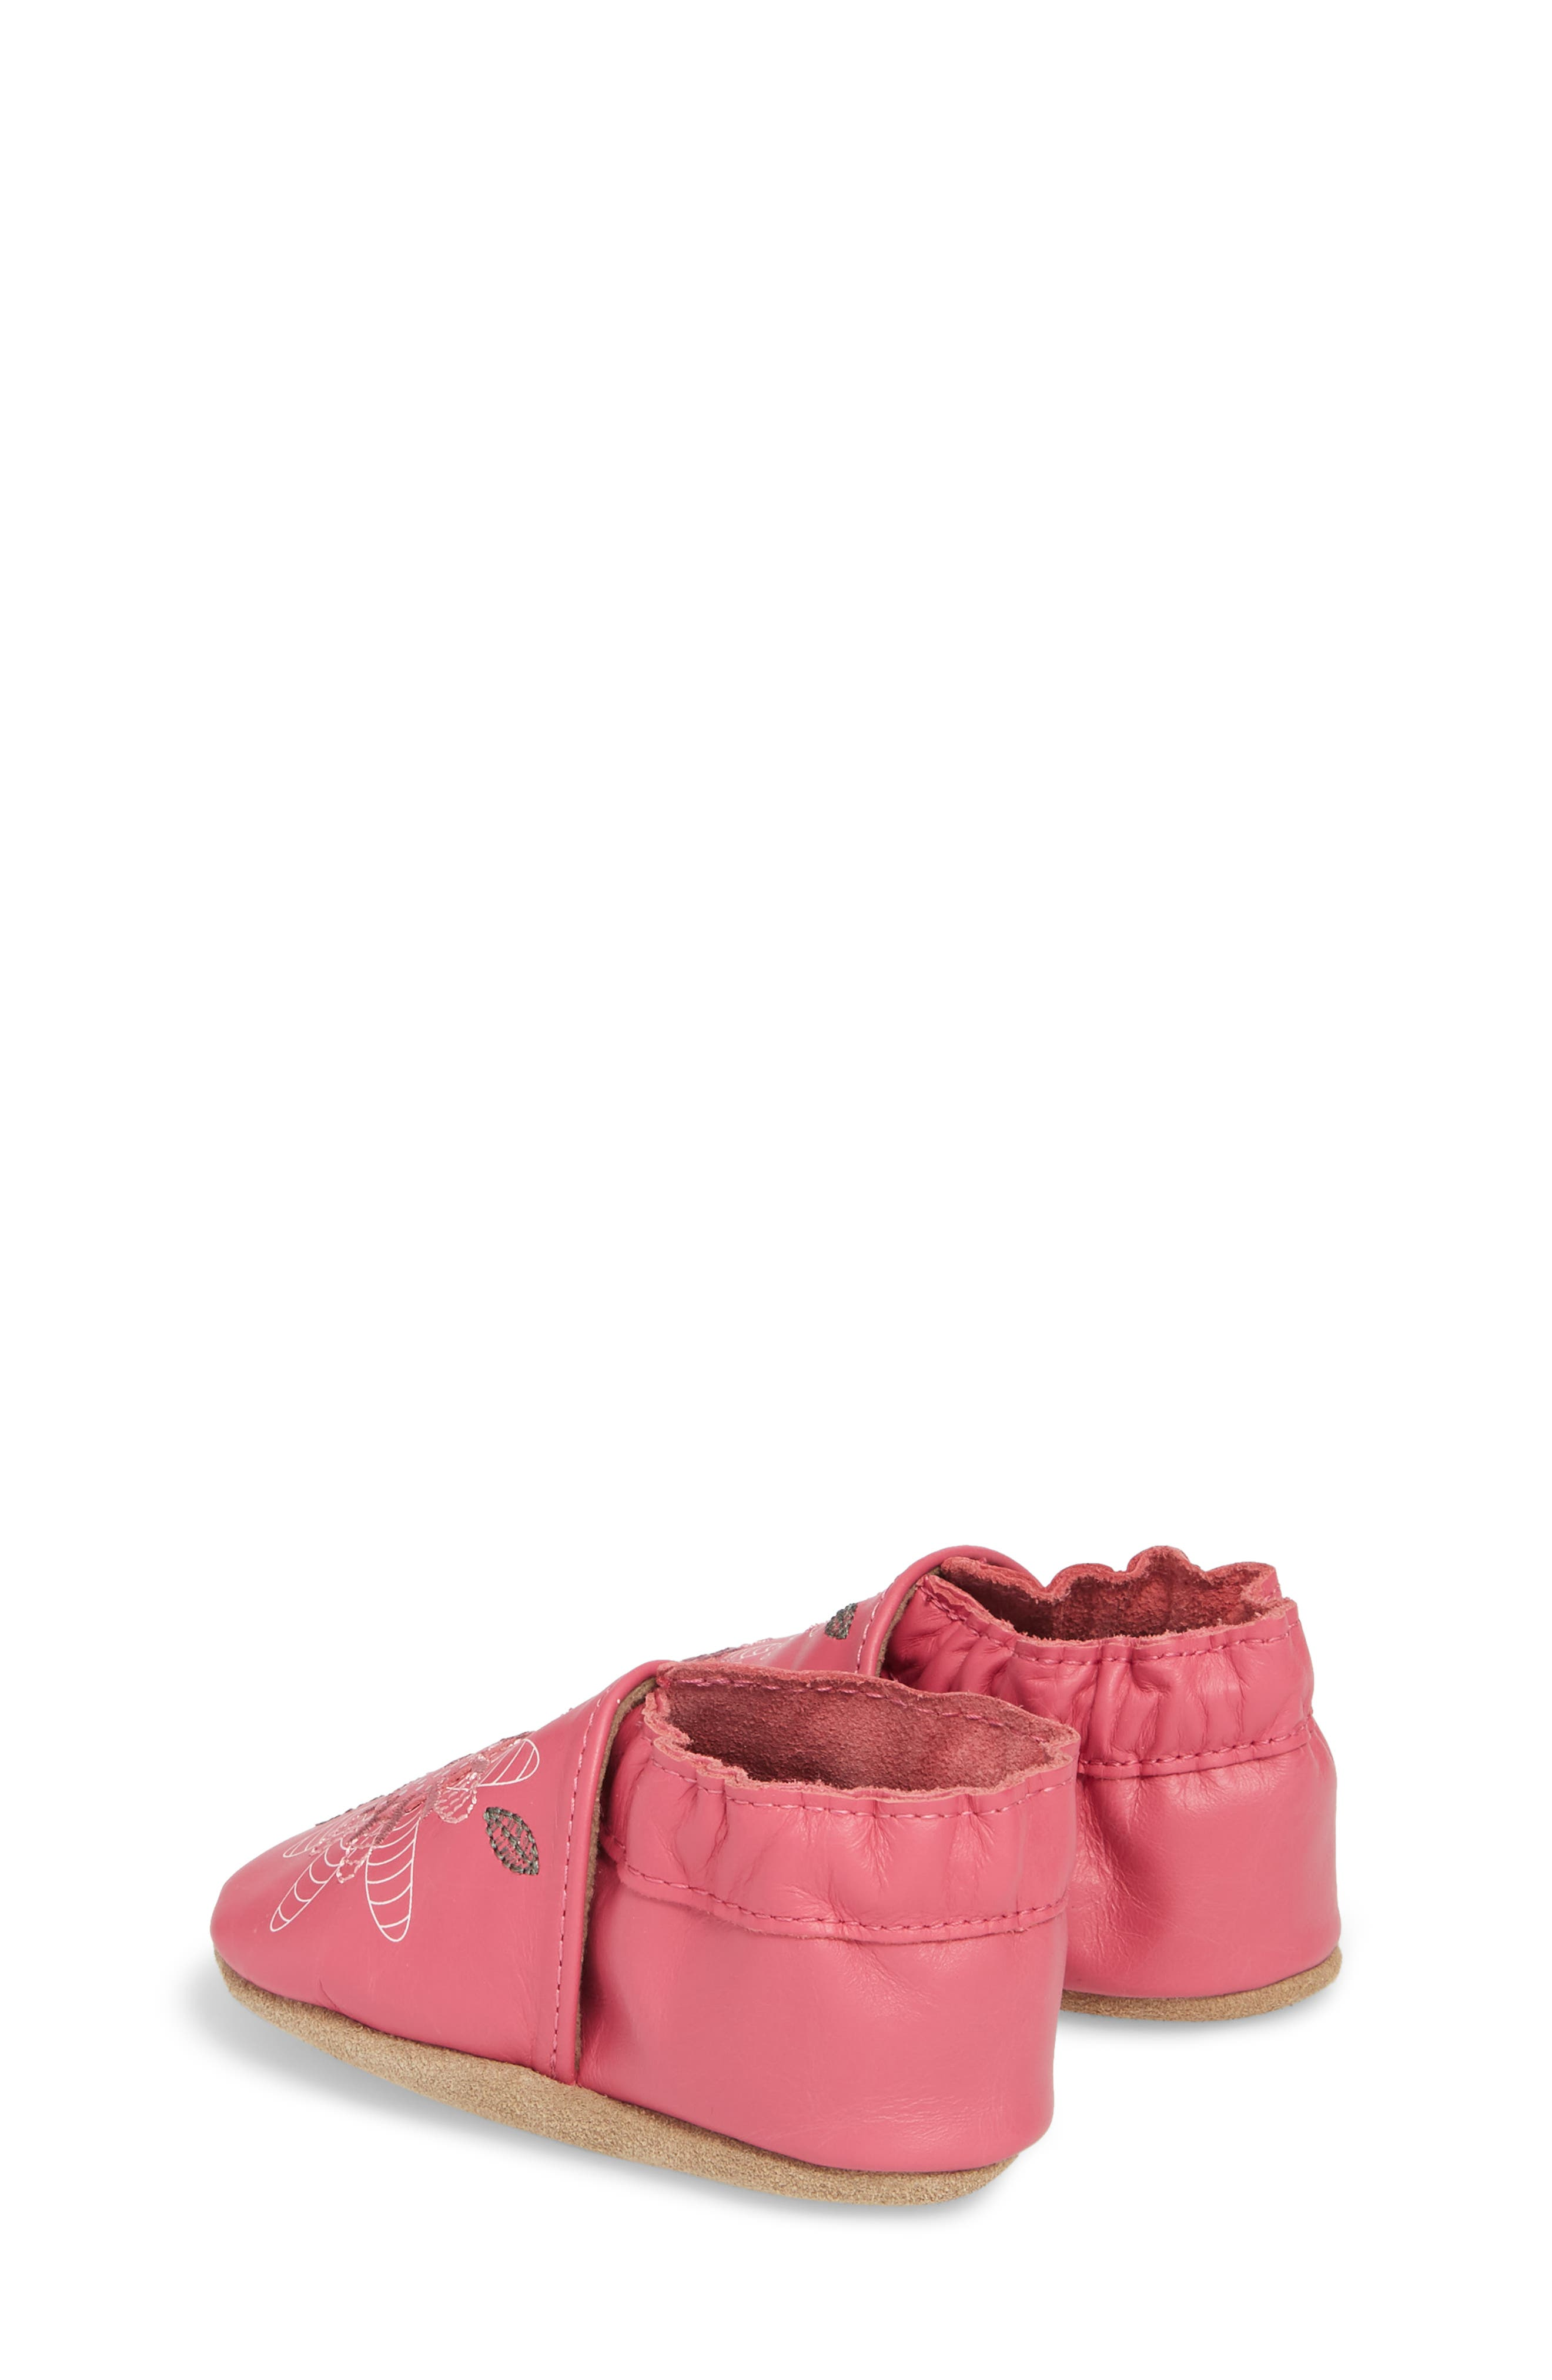 ROBEEZ<SUP>®</SUP>, Fiona Flower Moccasin Crib Shoe, Alternate thumbnail 2, color, HOT PINK